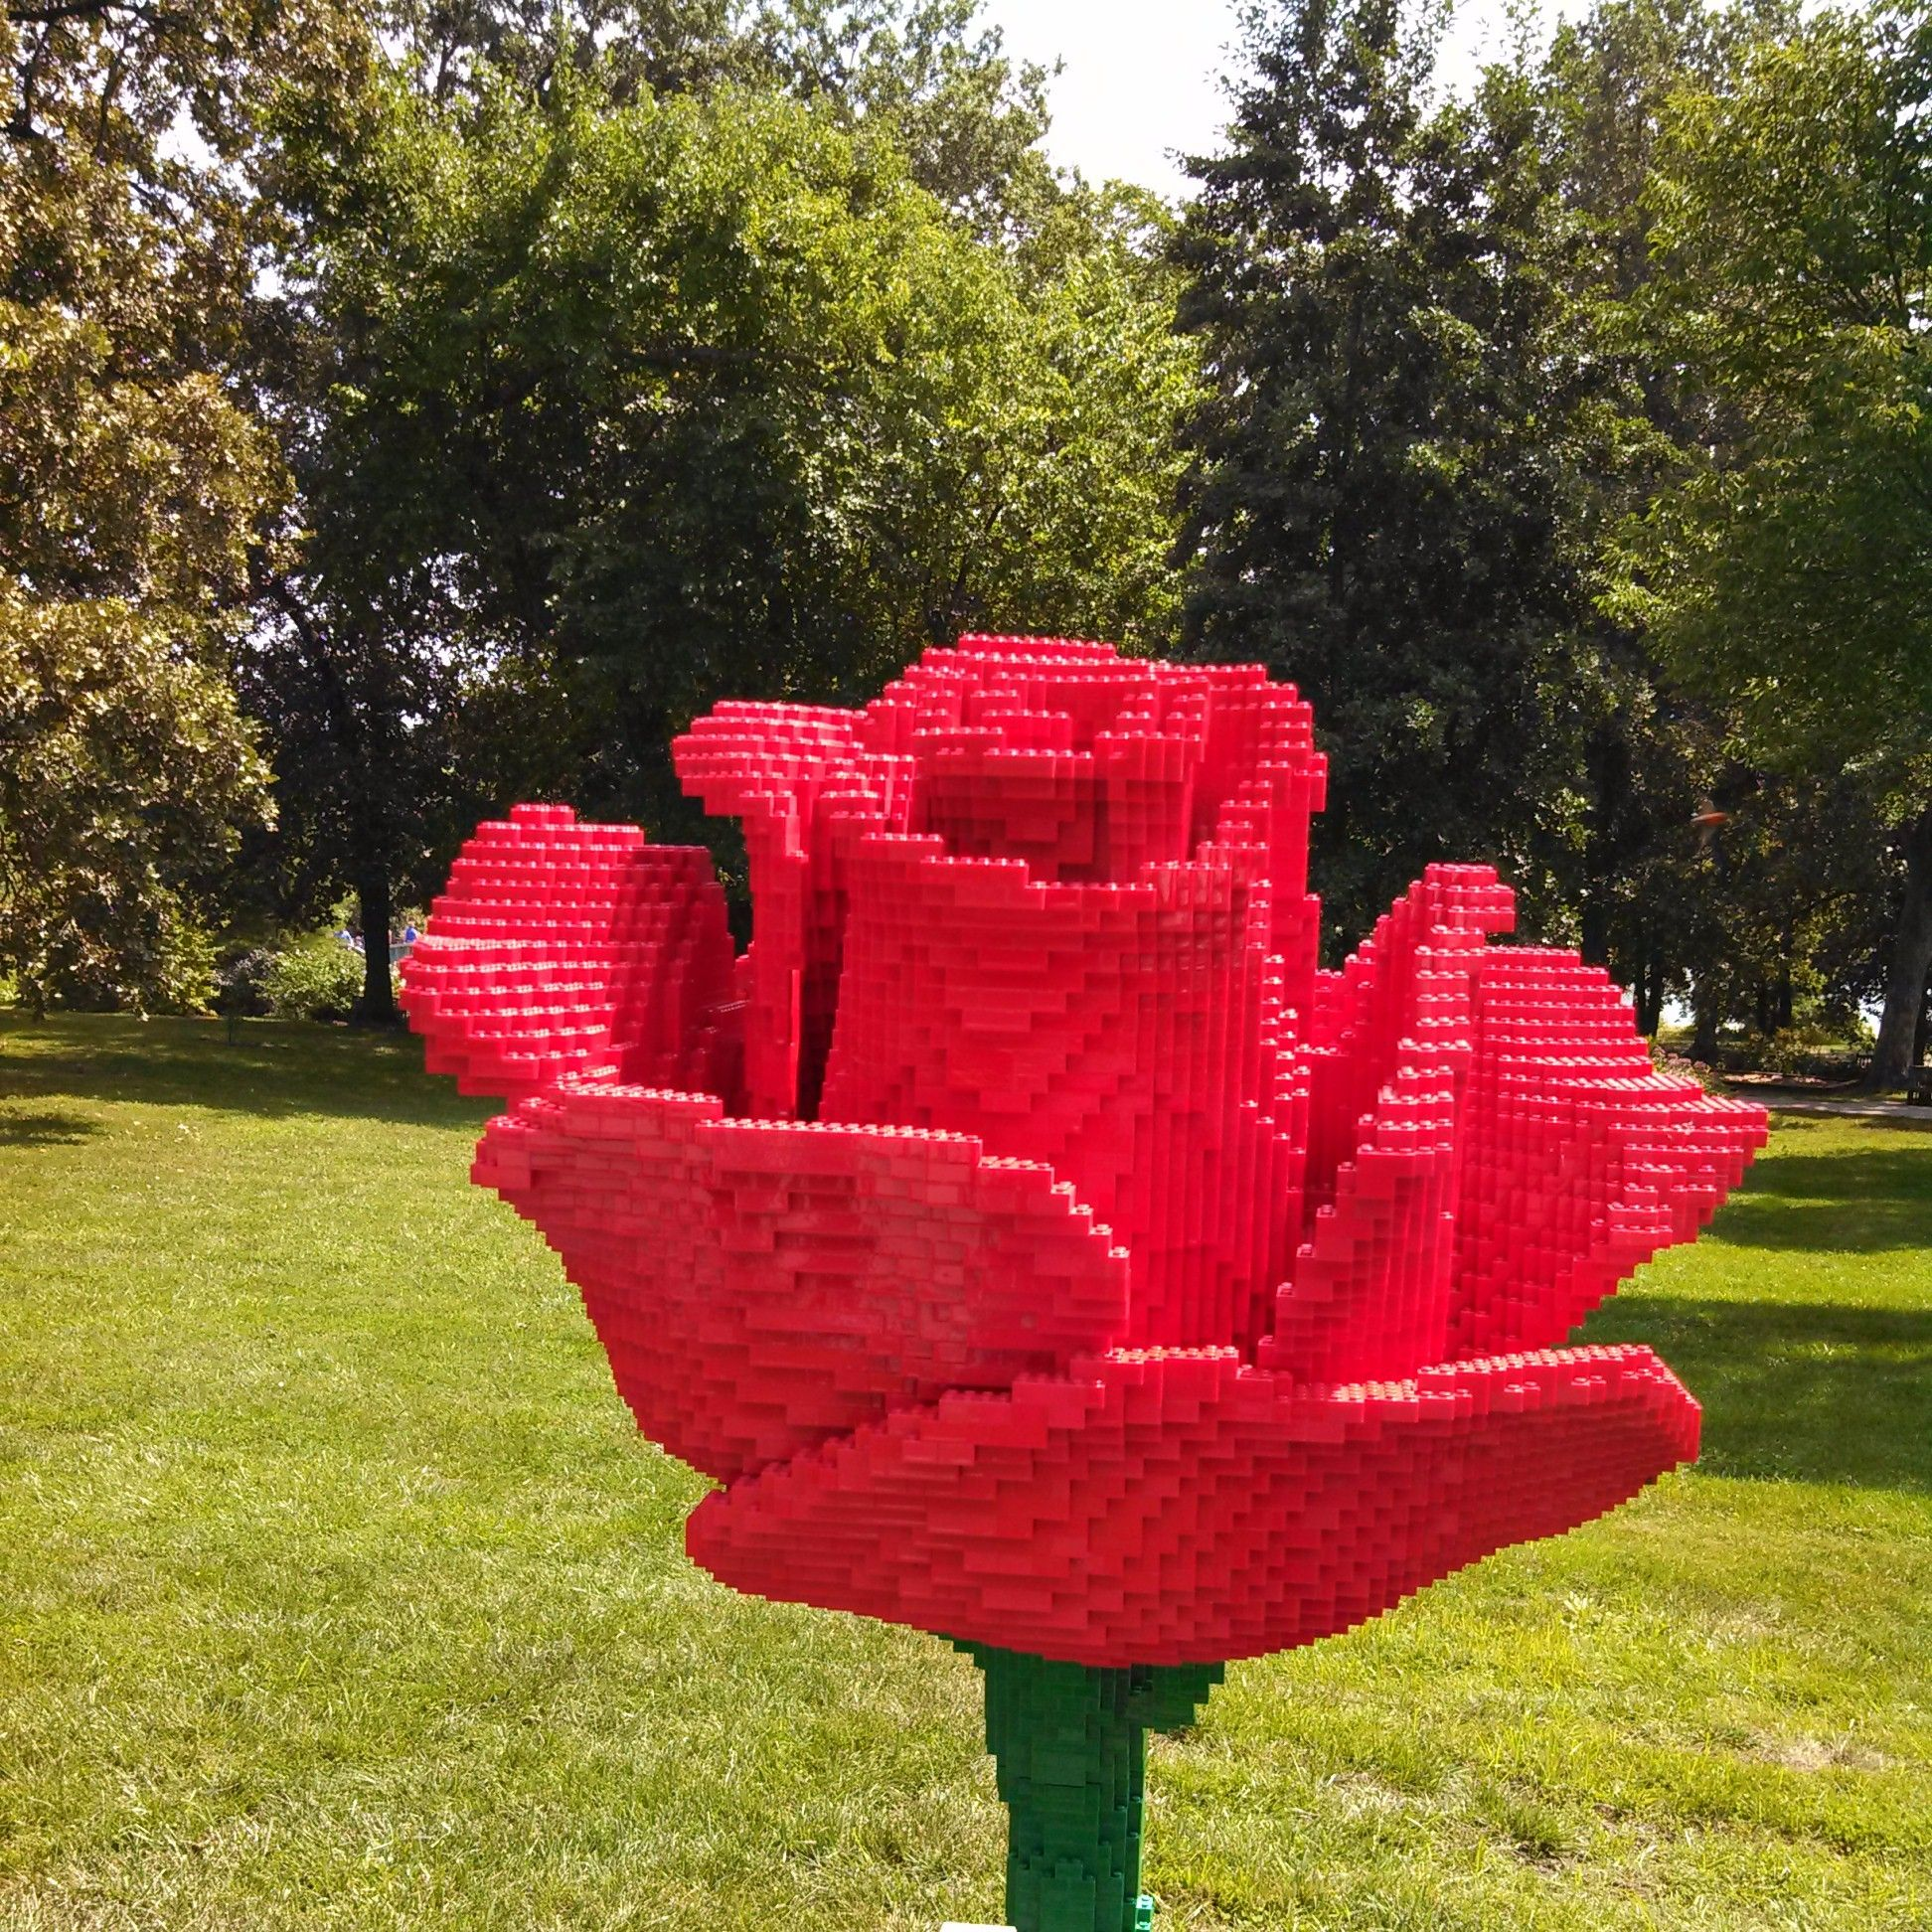 Rose Garden Creations: LEGO Rose By Sean Kenney At Powell Gardens